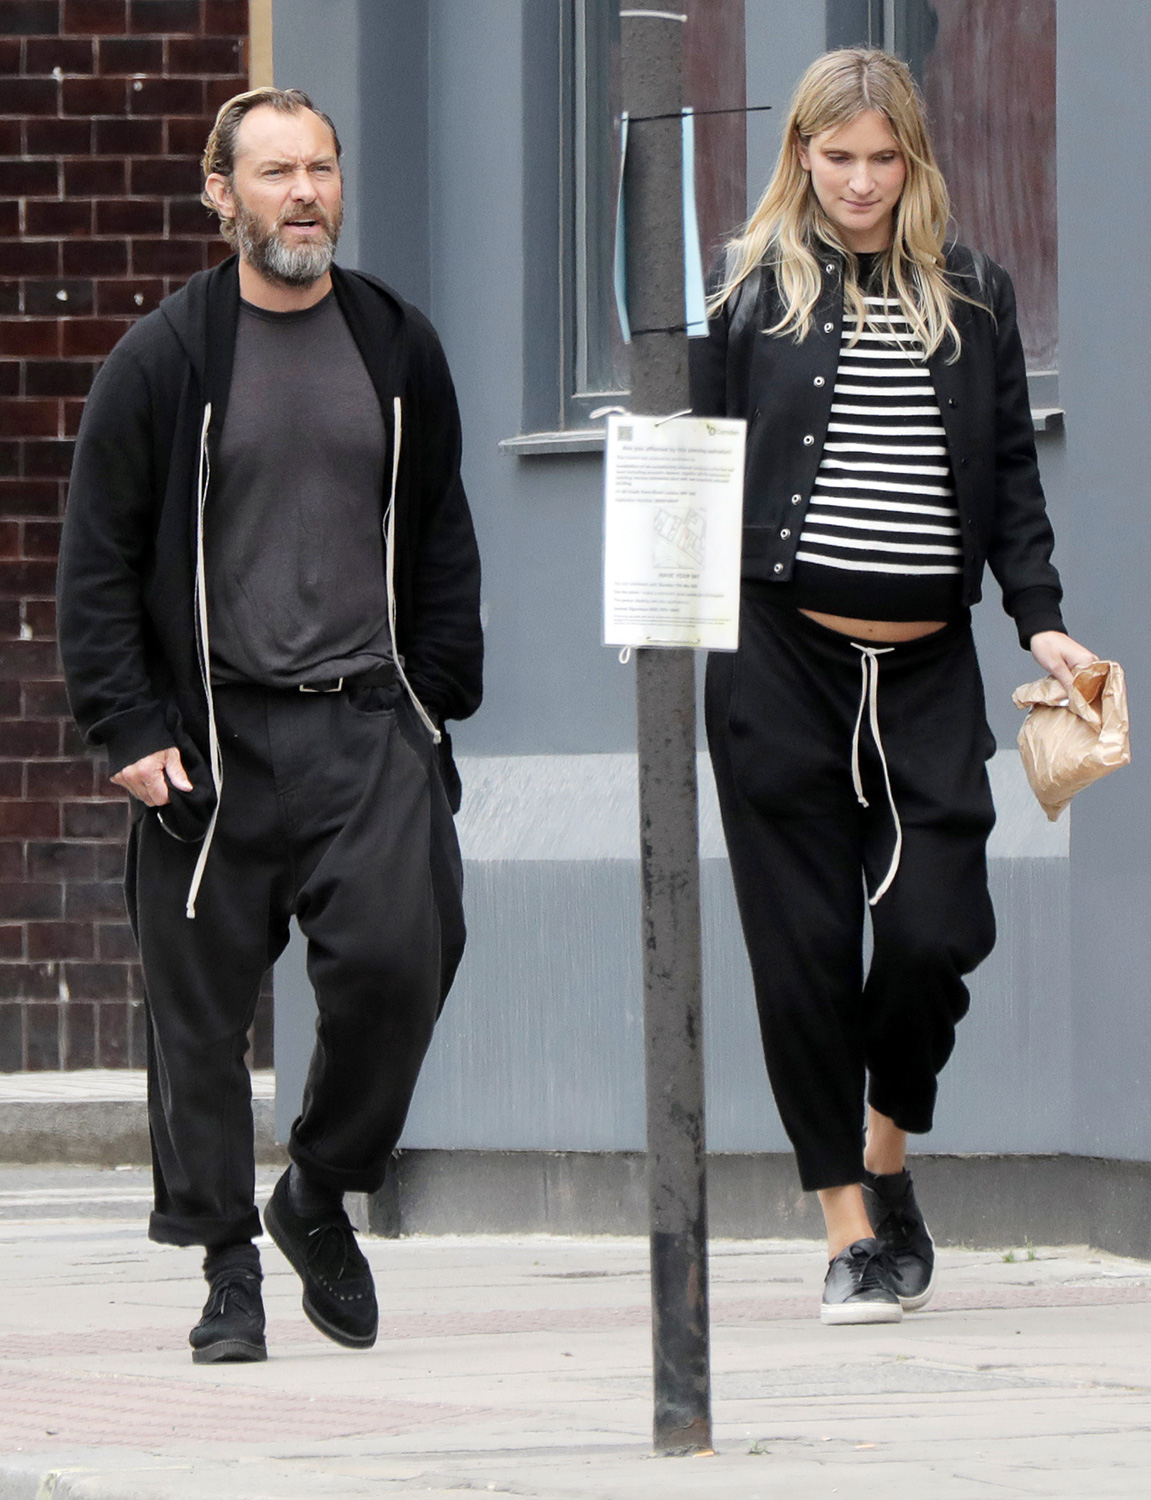 Jude Law and wife Phillipa Coan seen walking around Camden Town after a visit to The Salvation Army (Chalk Farm) on June 09, 2020 in London, England